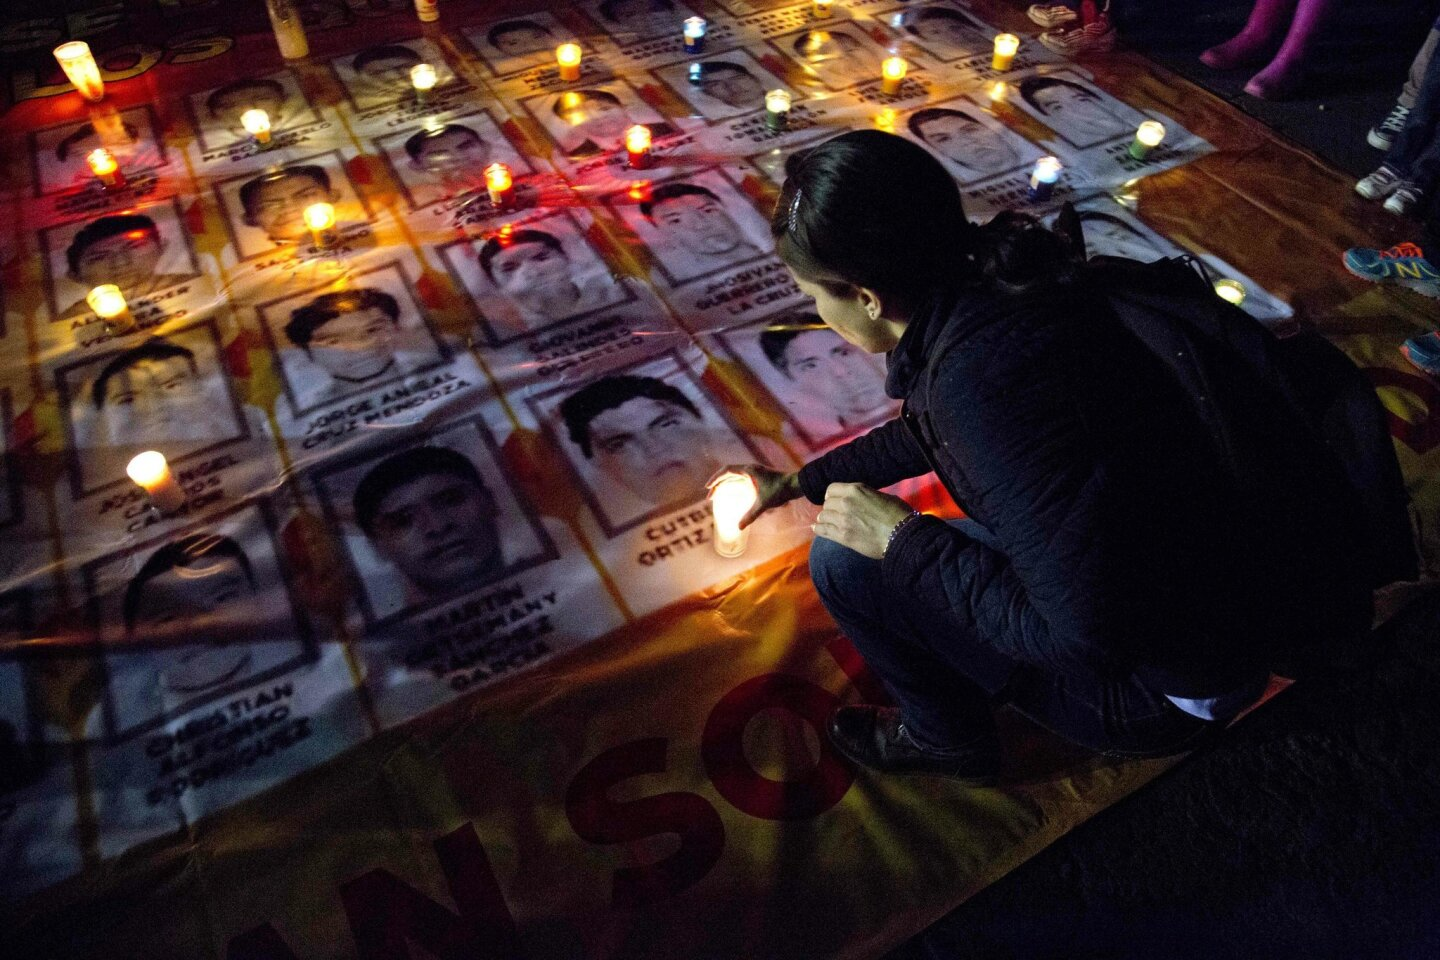 A woman places a candle on photos of the missing students during a protest against the disappearance of 43 students from the Isidro Burgos rural teachers college, in Mexico City, Wednesday, Oct. 22, 2014. Tens of thousands marched in Mexico City's main avenue demanding the return of the missing stu